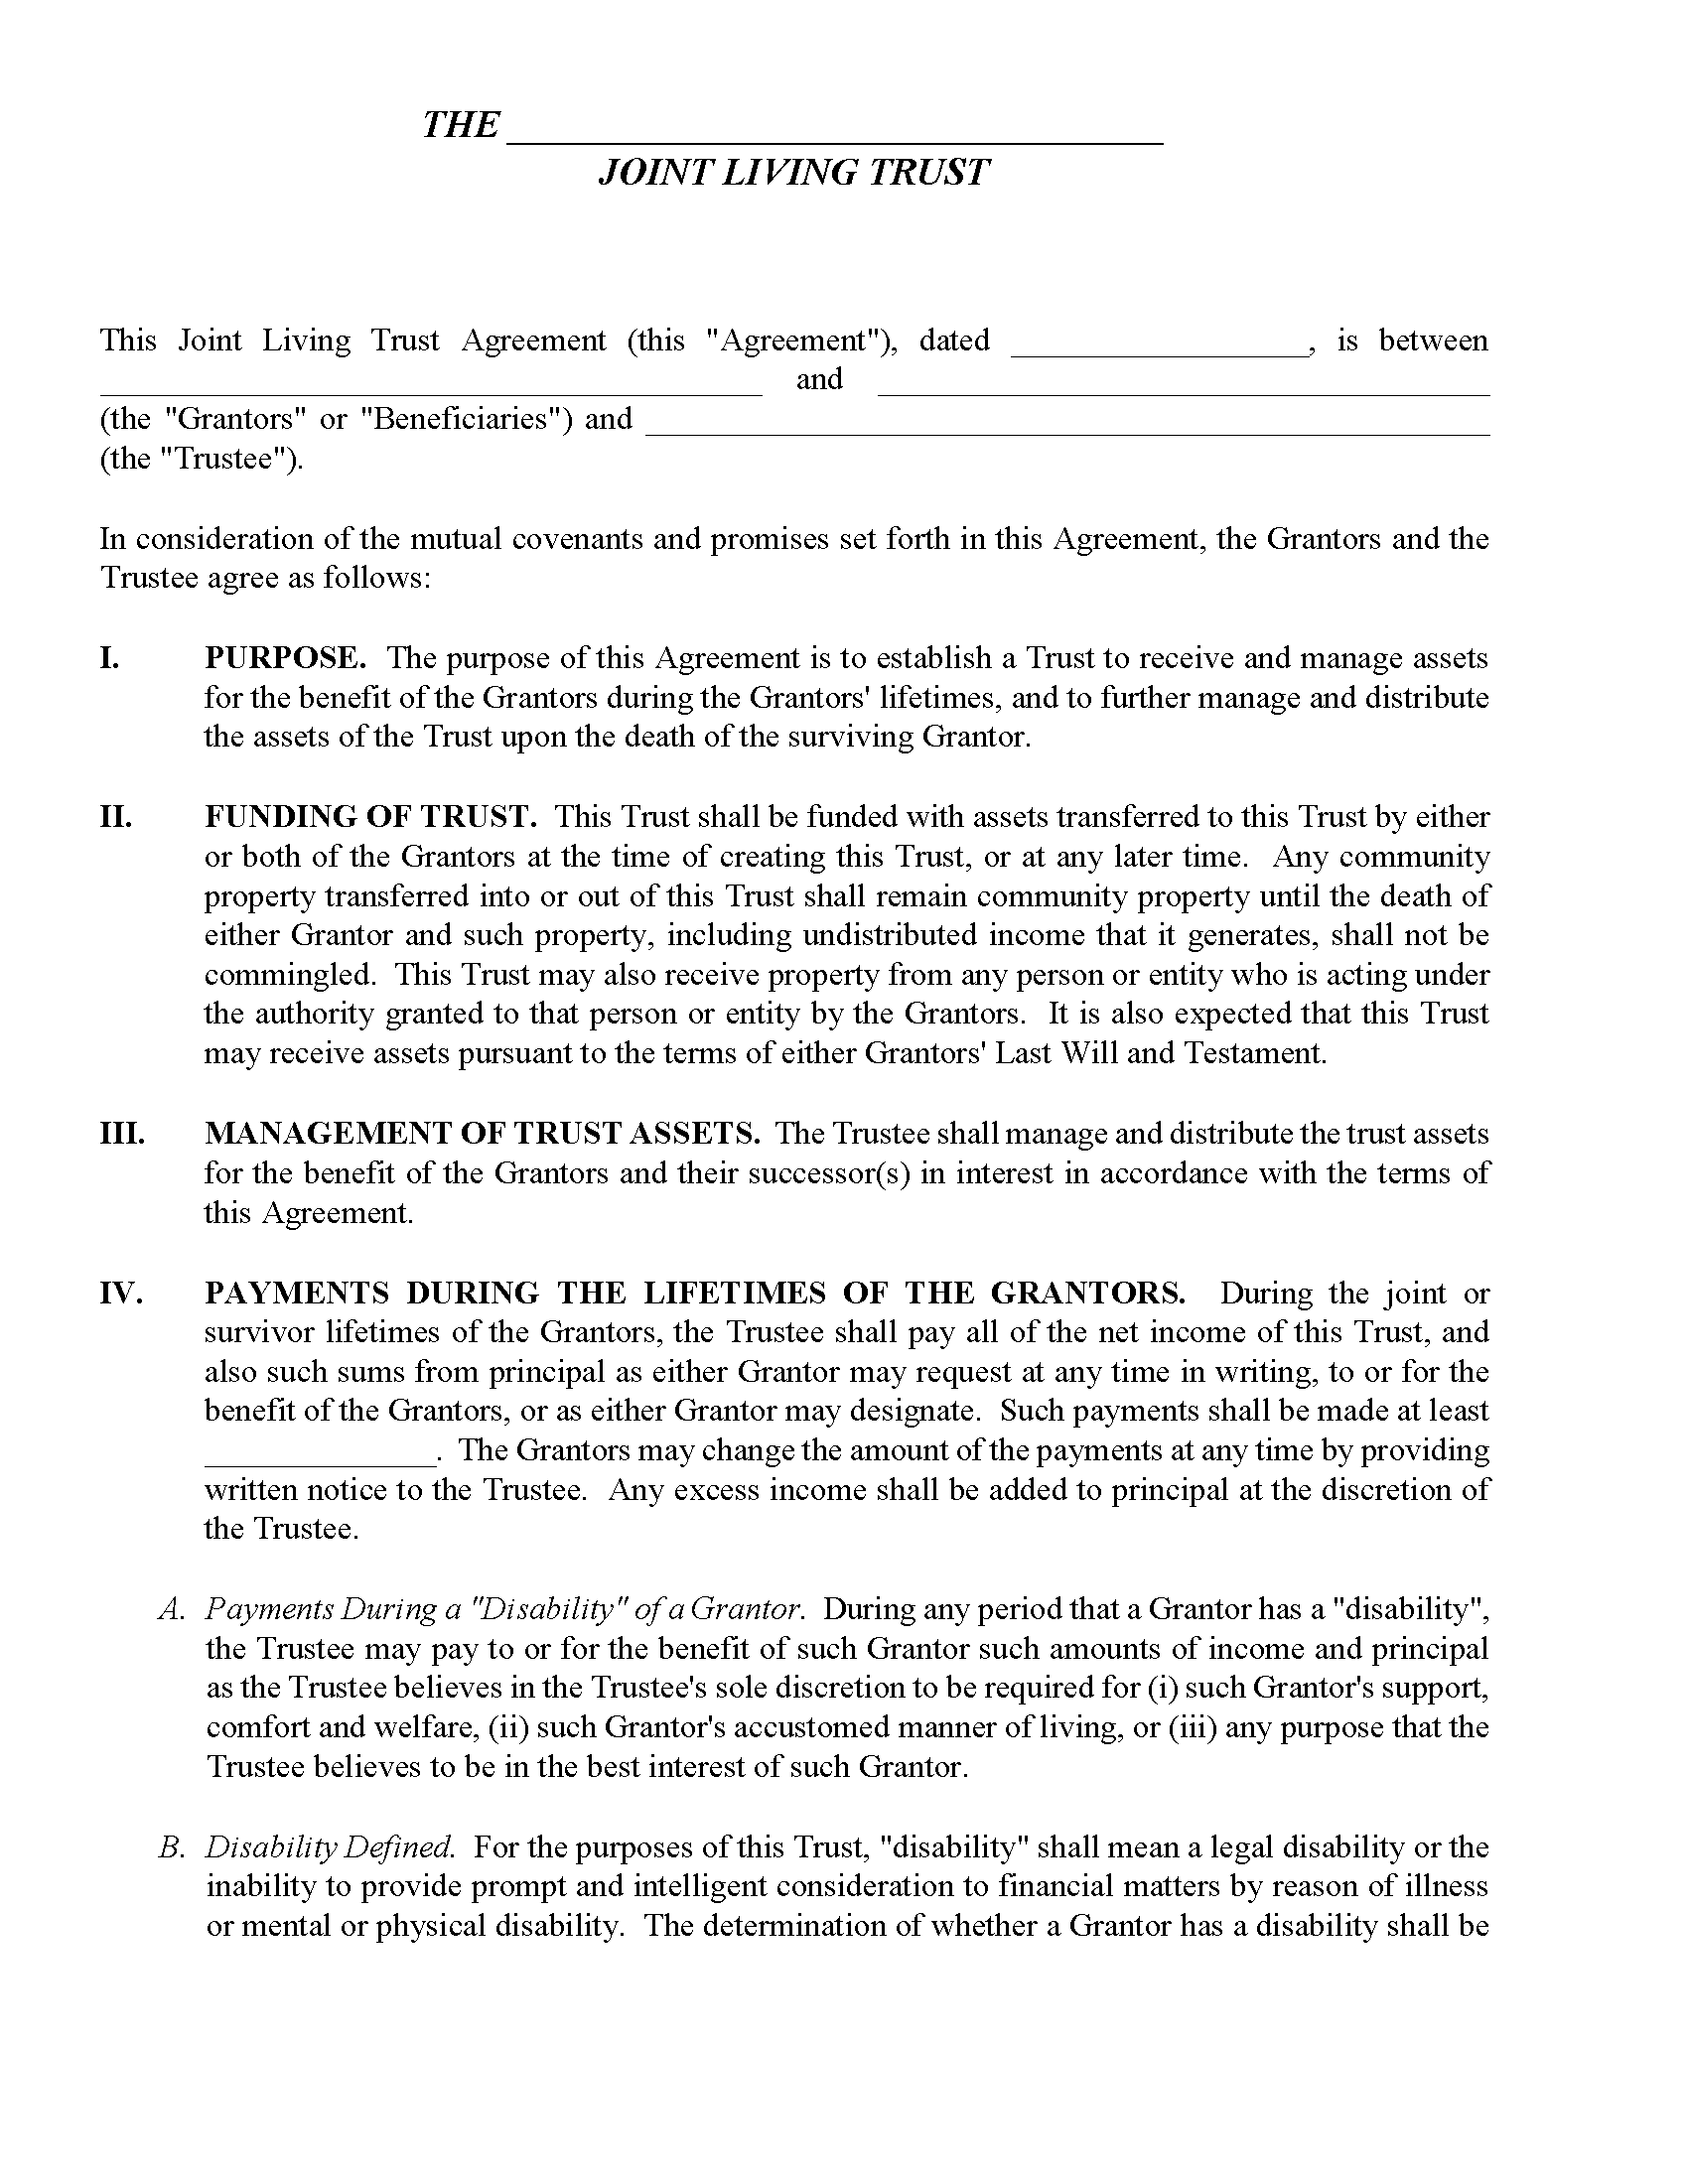 West Virginia Joint Living Trust Form